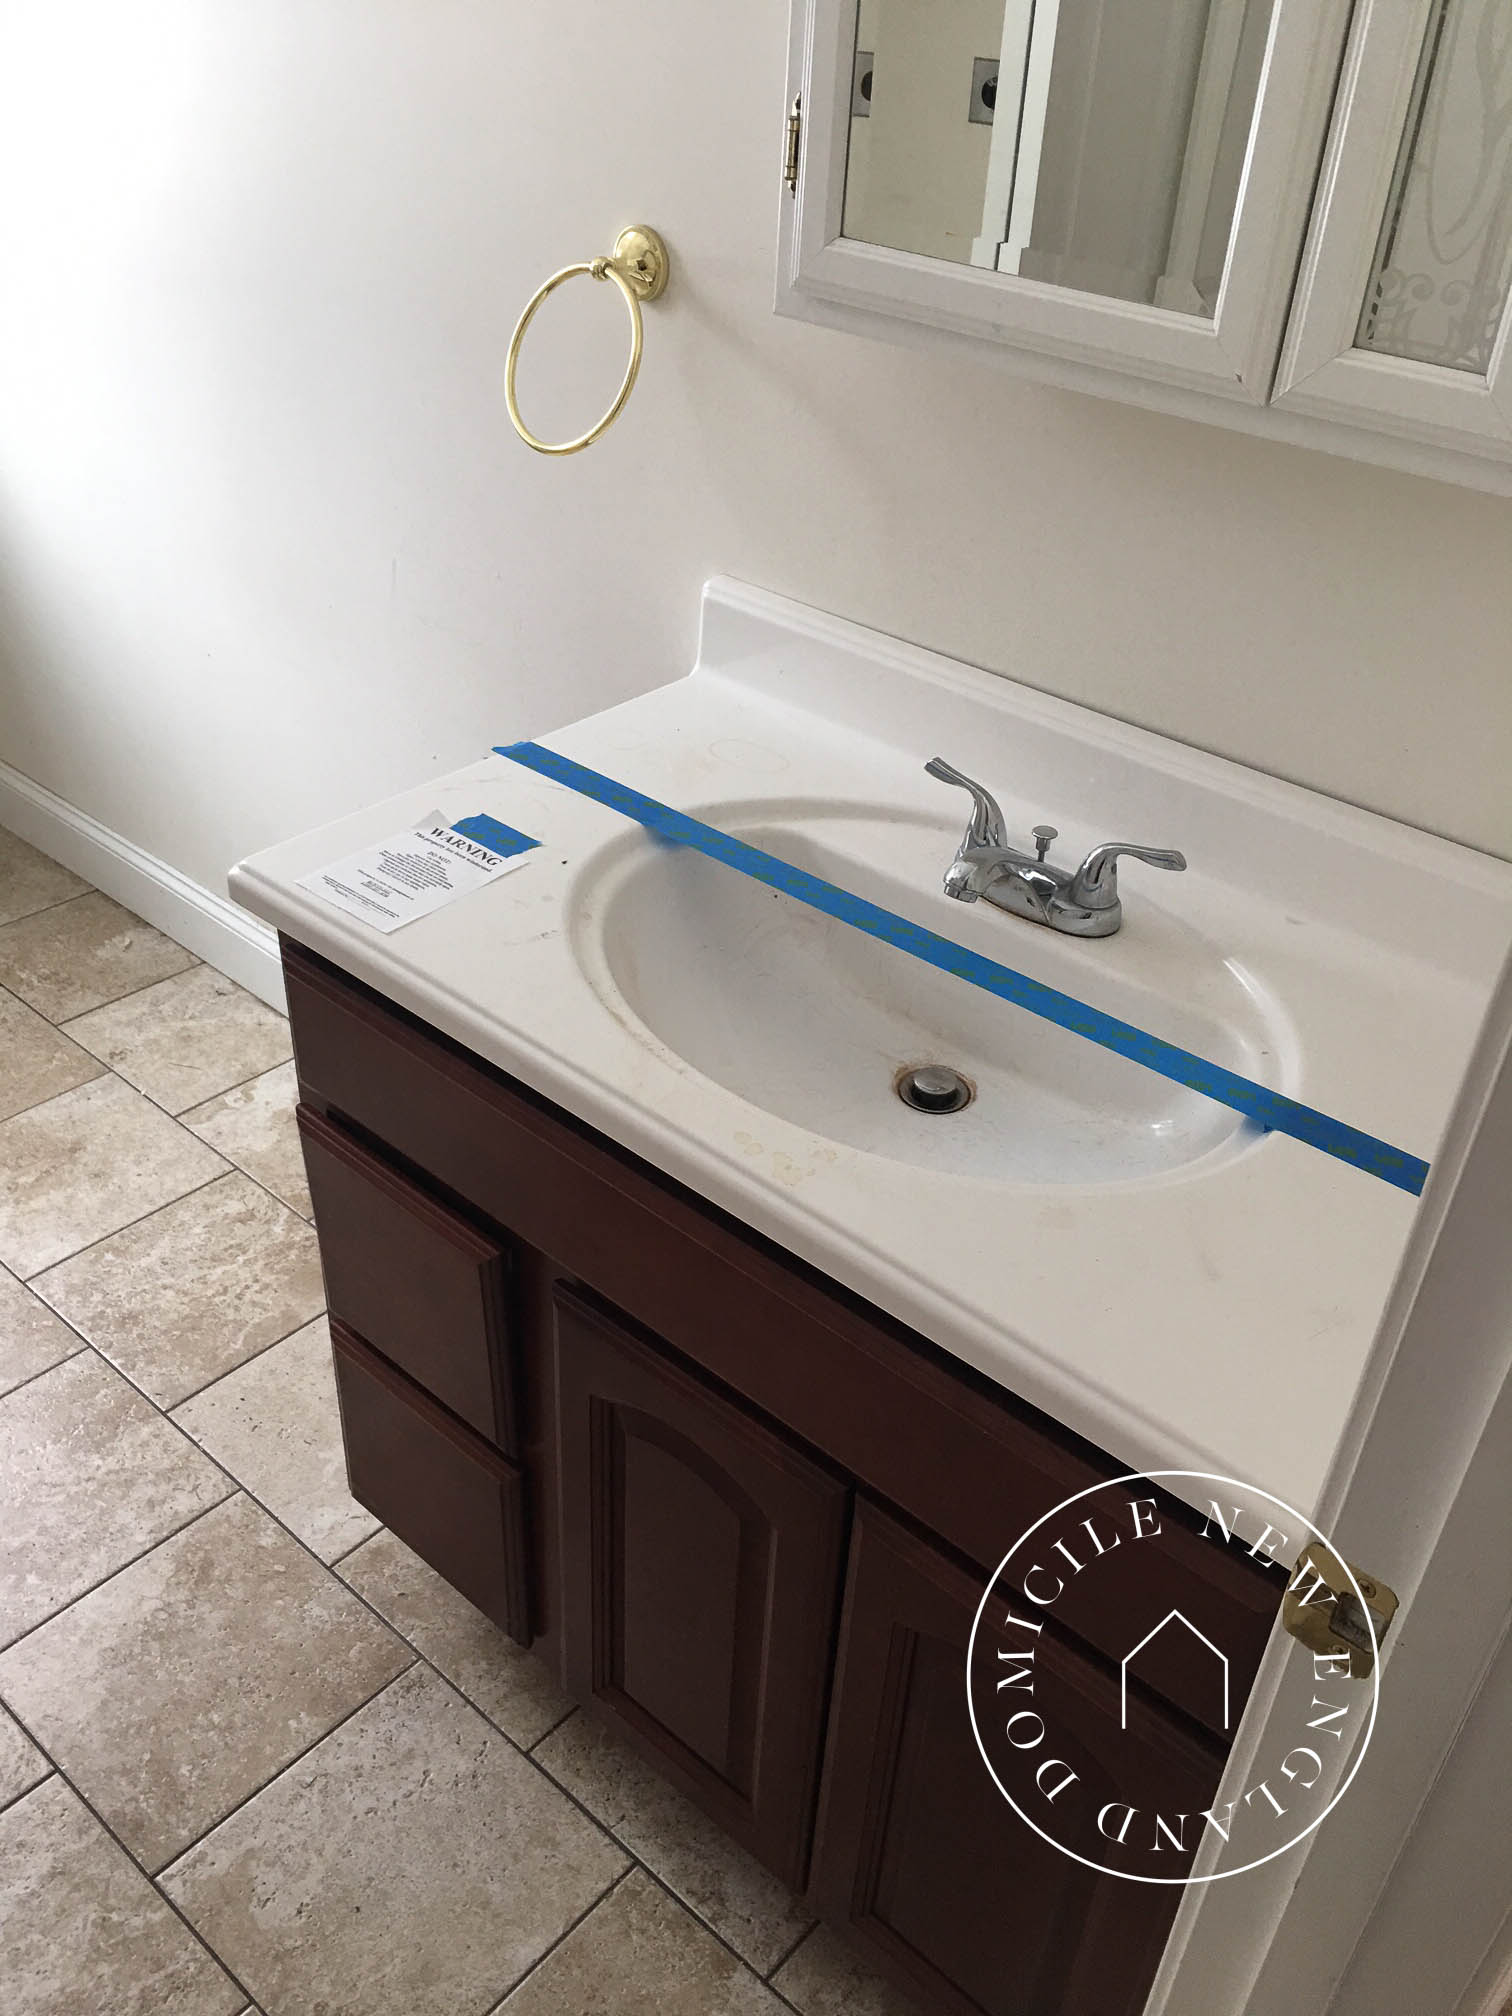 Before We Even Closed On The House I Had Made Up My Mind That The Whole  Room Itself Would Be Designed Around A Vintage 4 Foot Double Basin Soapstone  Sink.